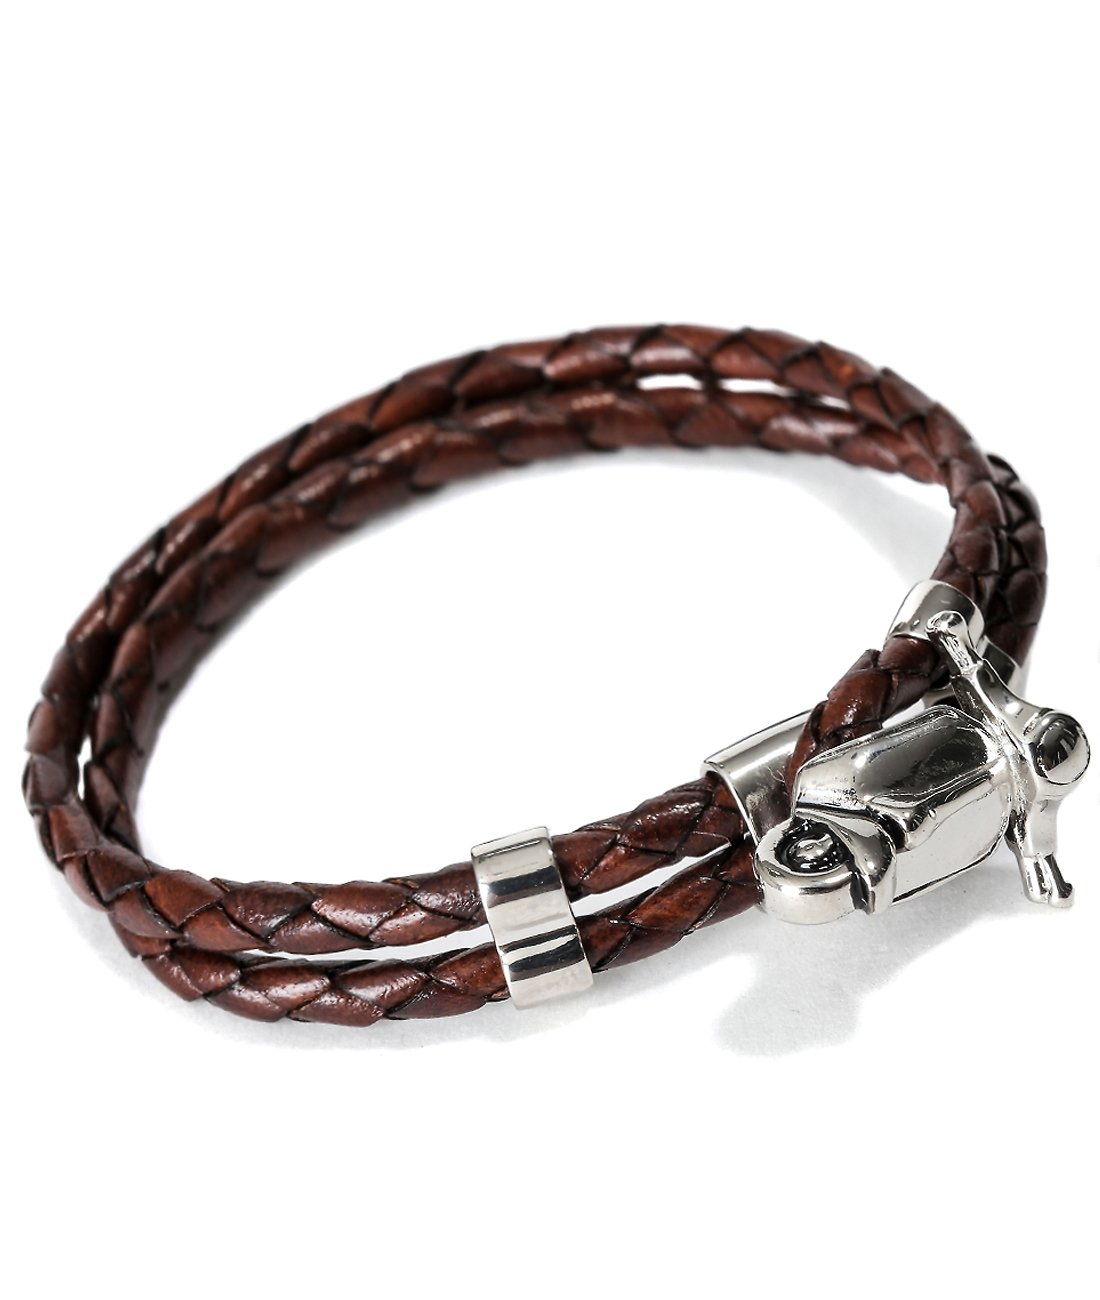 Mon Art Women's Braided Bracelet with Metal Toggle L Dark Brown